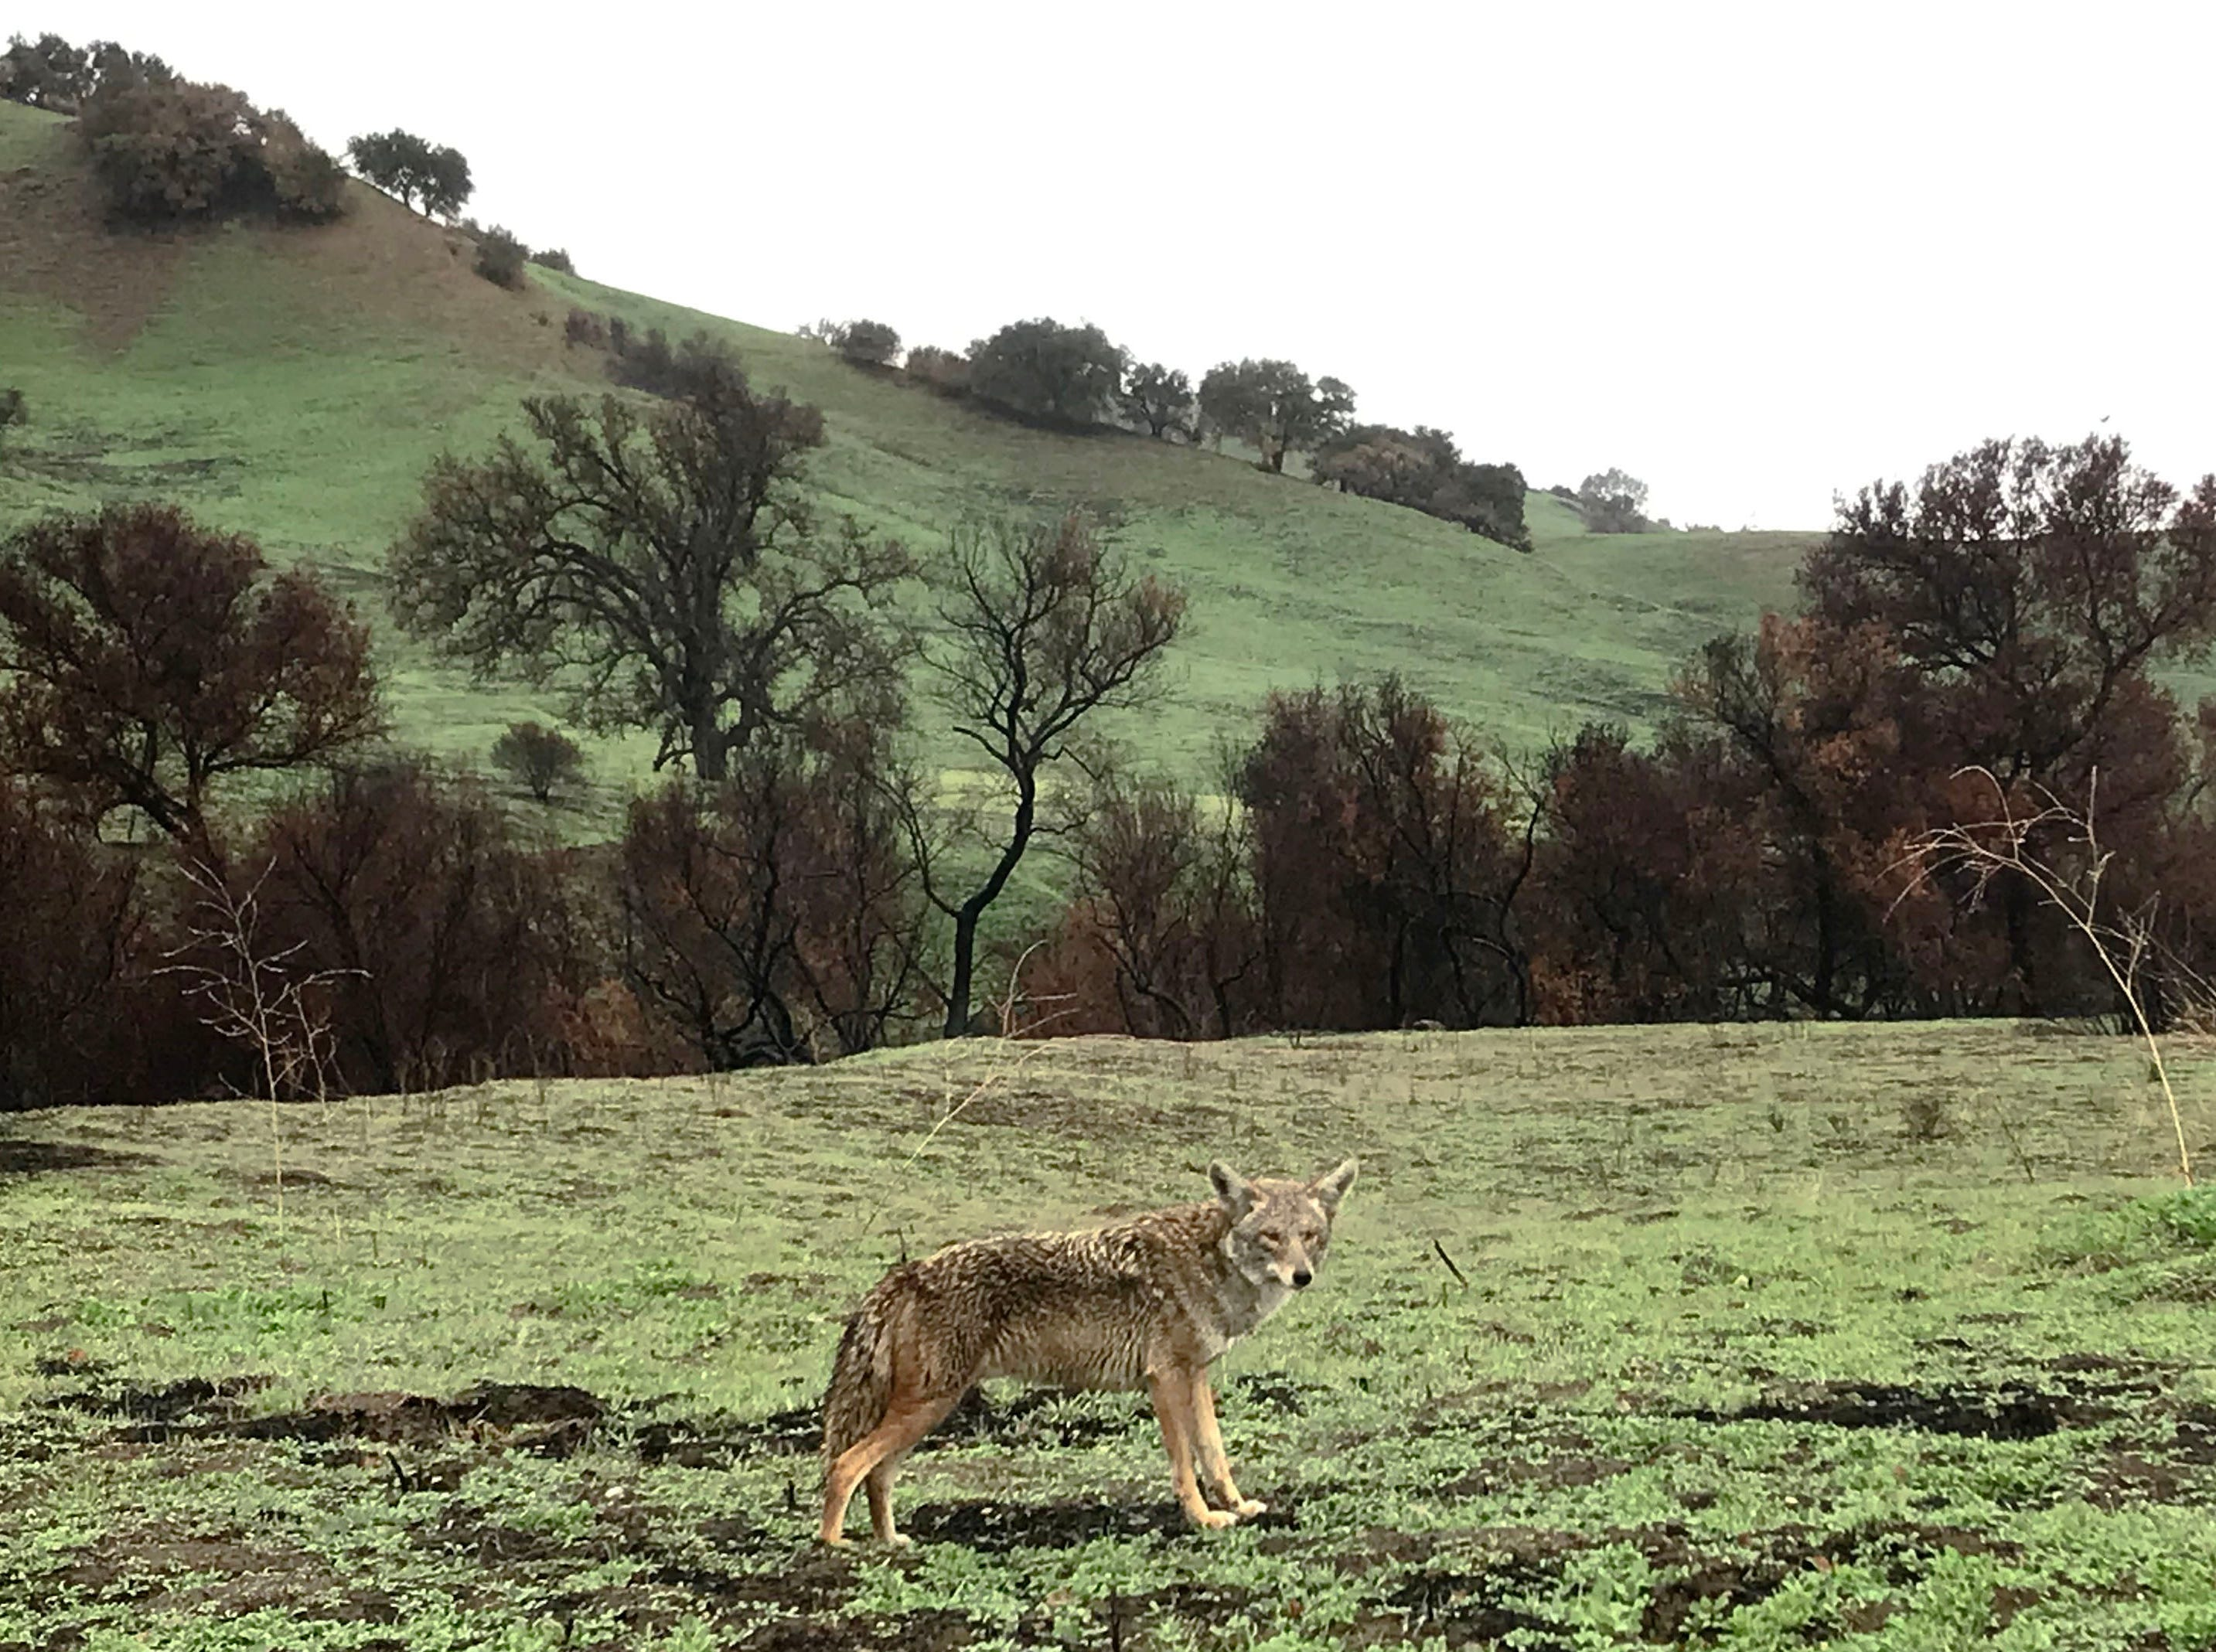 A coyote passes through Malibu Creek State Park on Saturday after an overnight storm.